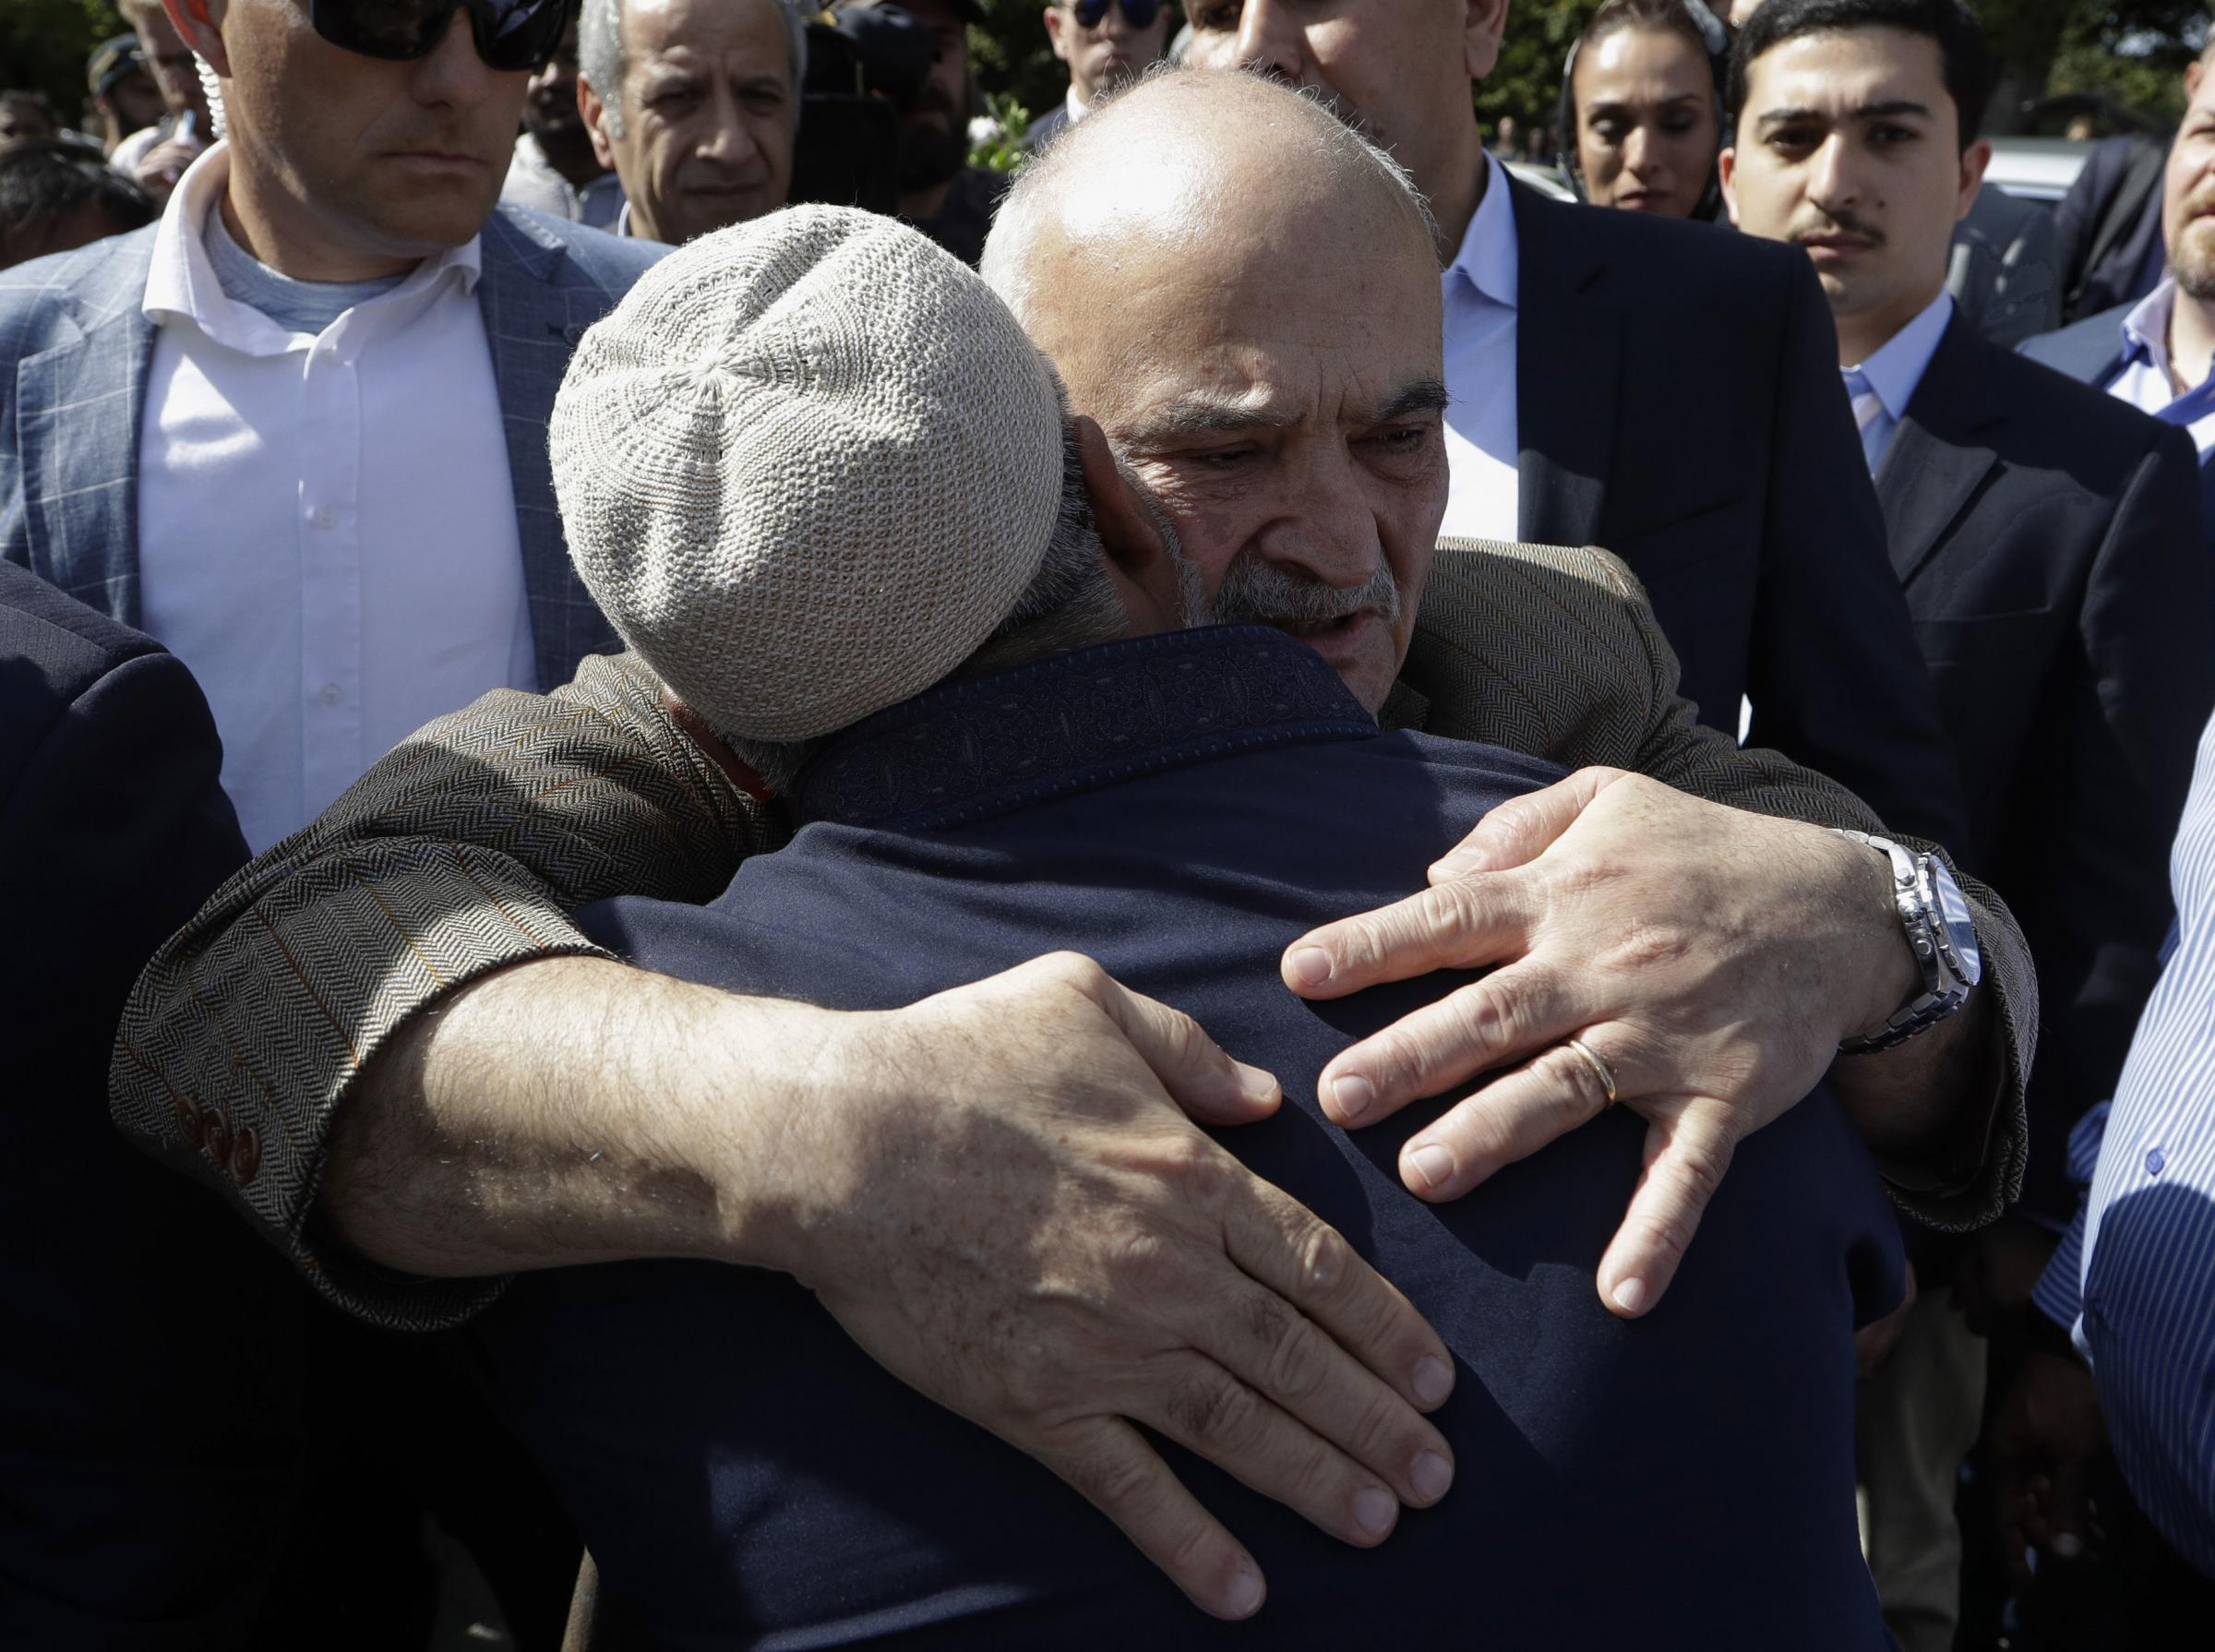 His Royal Highness Prince El Hassan bin Talal Hashemite, of the Kingdom of Jordan, embraces a worshipper outside the Al Noor mosque in Christchurch, New Zealand, Saturday, March 23, 2019 (AP/ Photo)